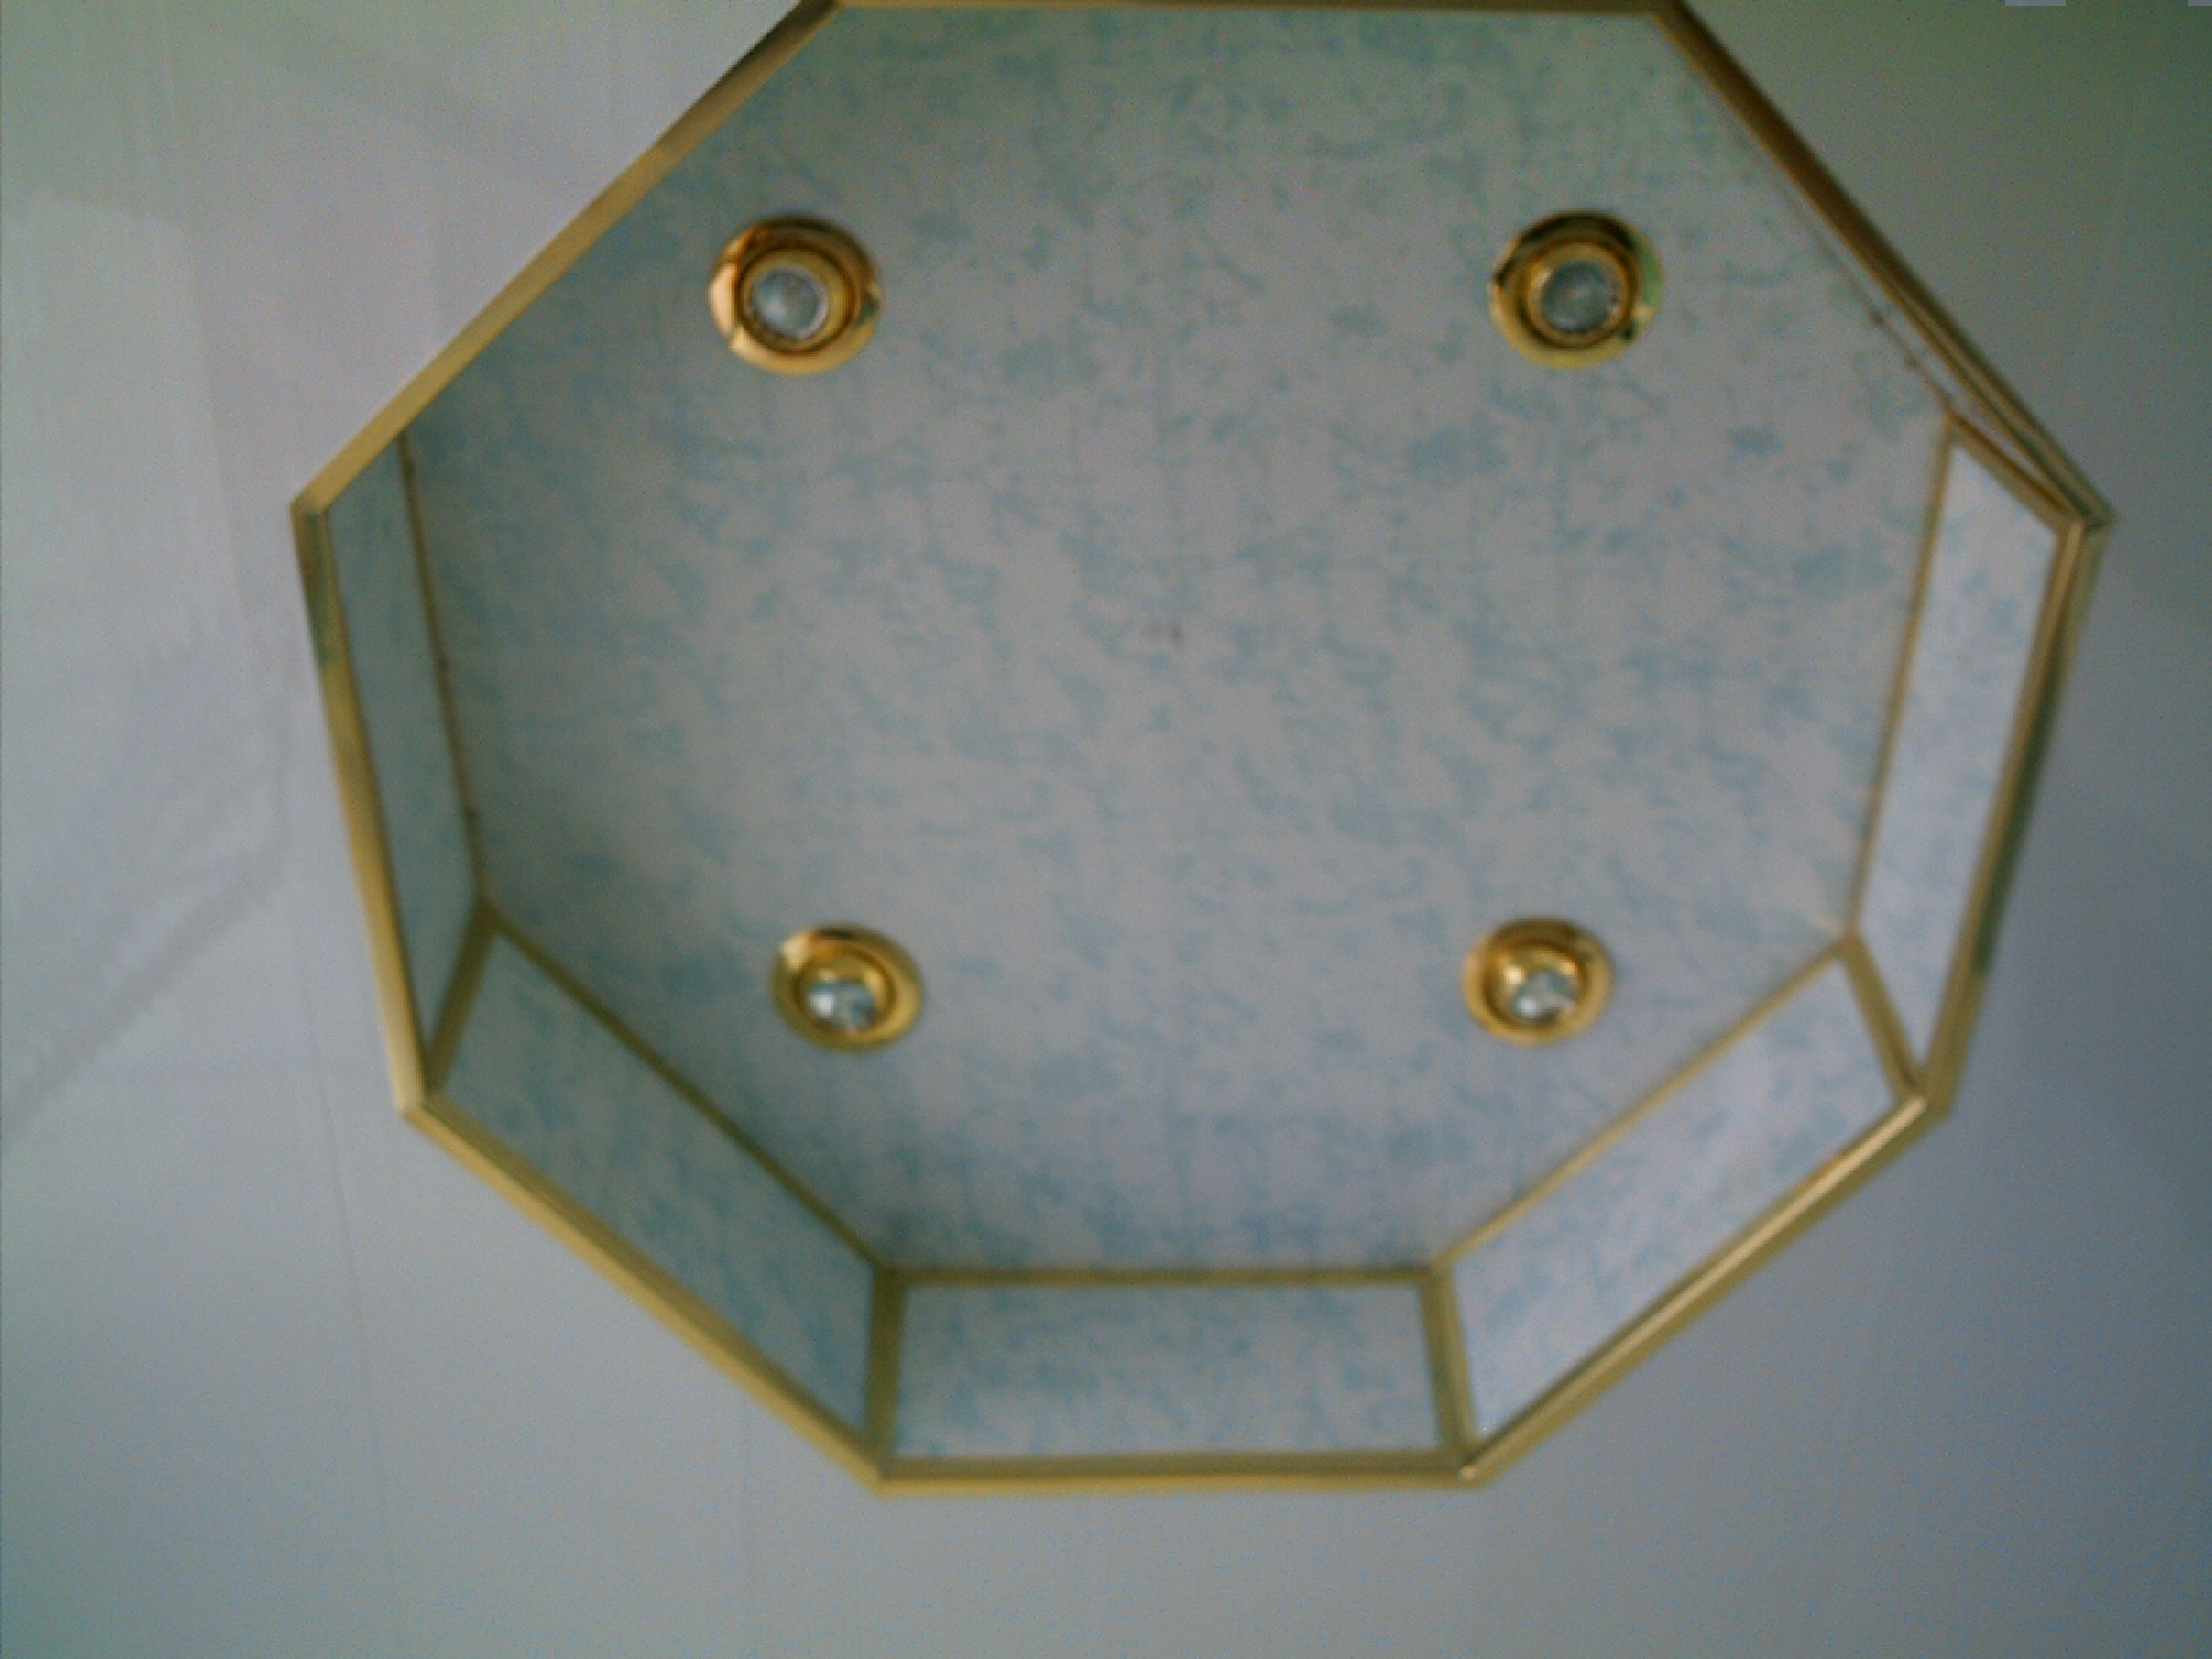 Pvc wall and ceiling panels trinidad pvc panels trinidad pictures ceiling panels trinidad doublecrazyfo Image collections